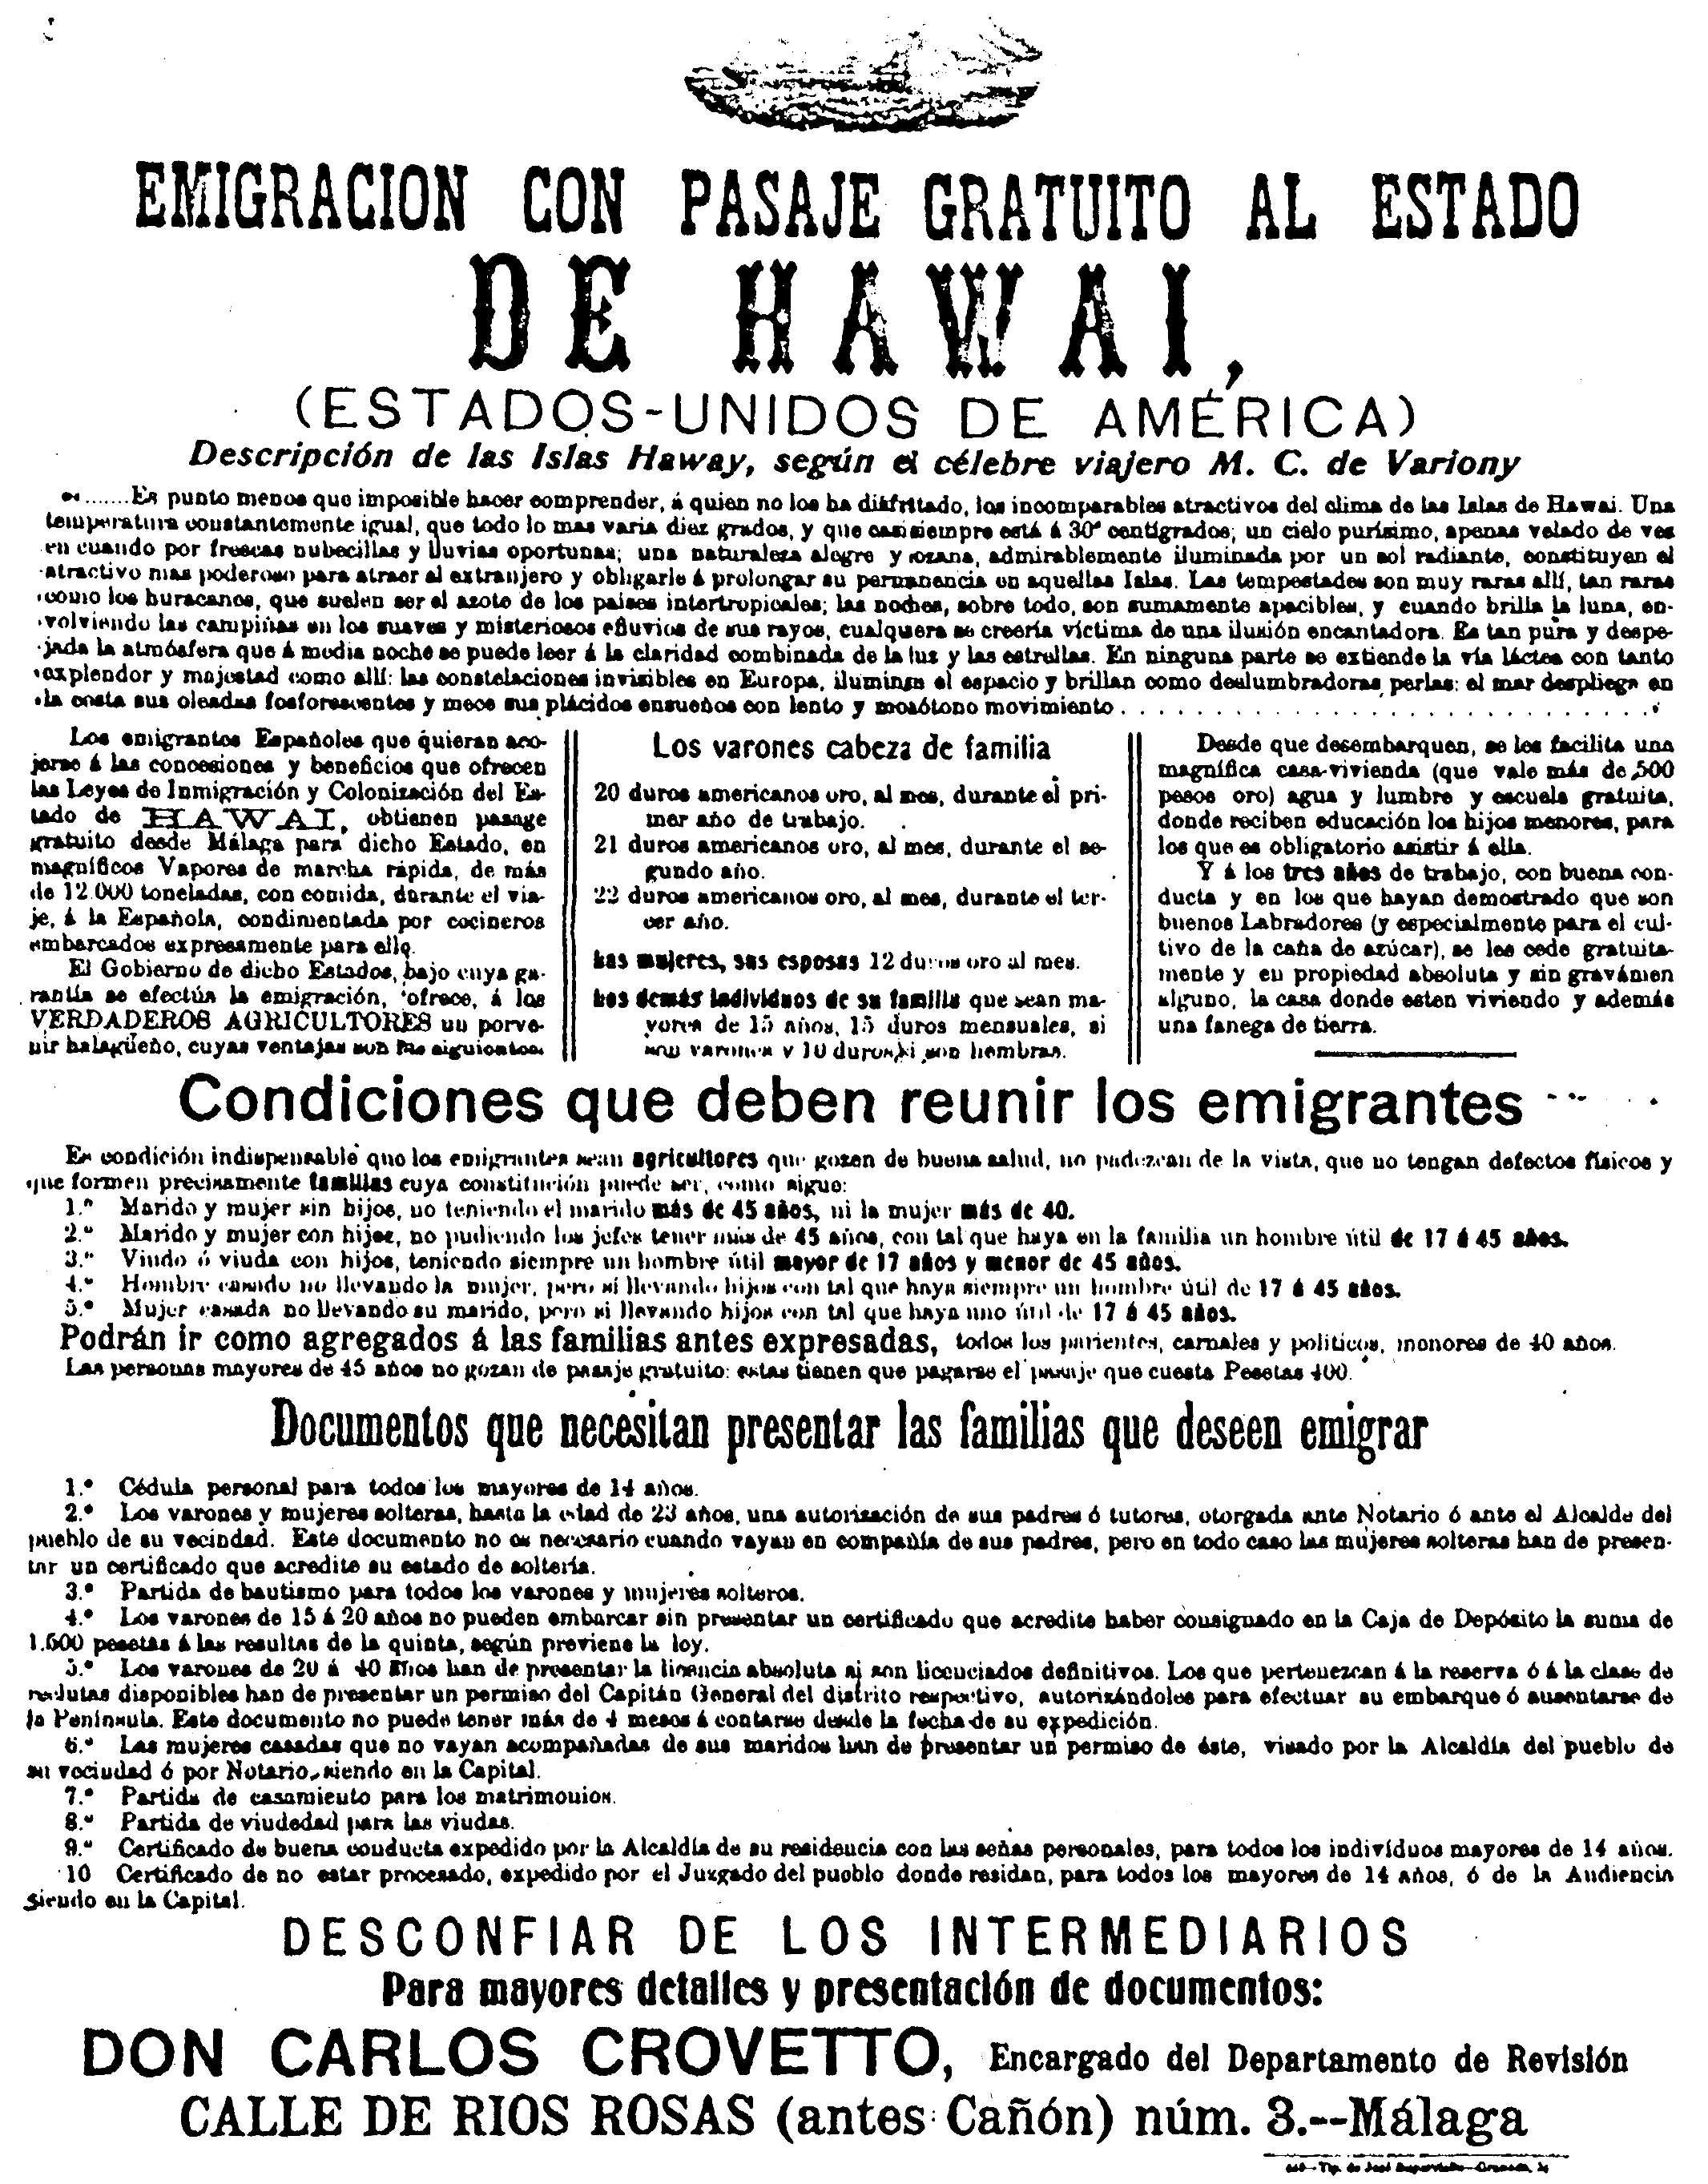 Terms and conditions for laborers to get free passage to Hawaii